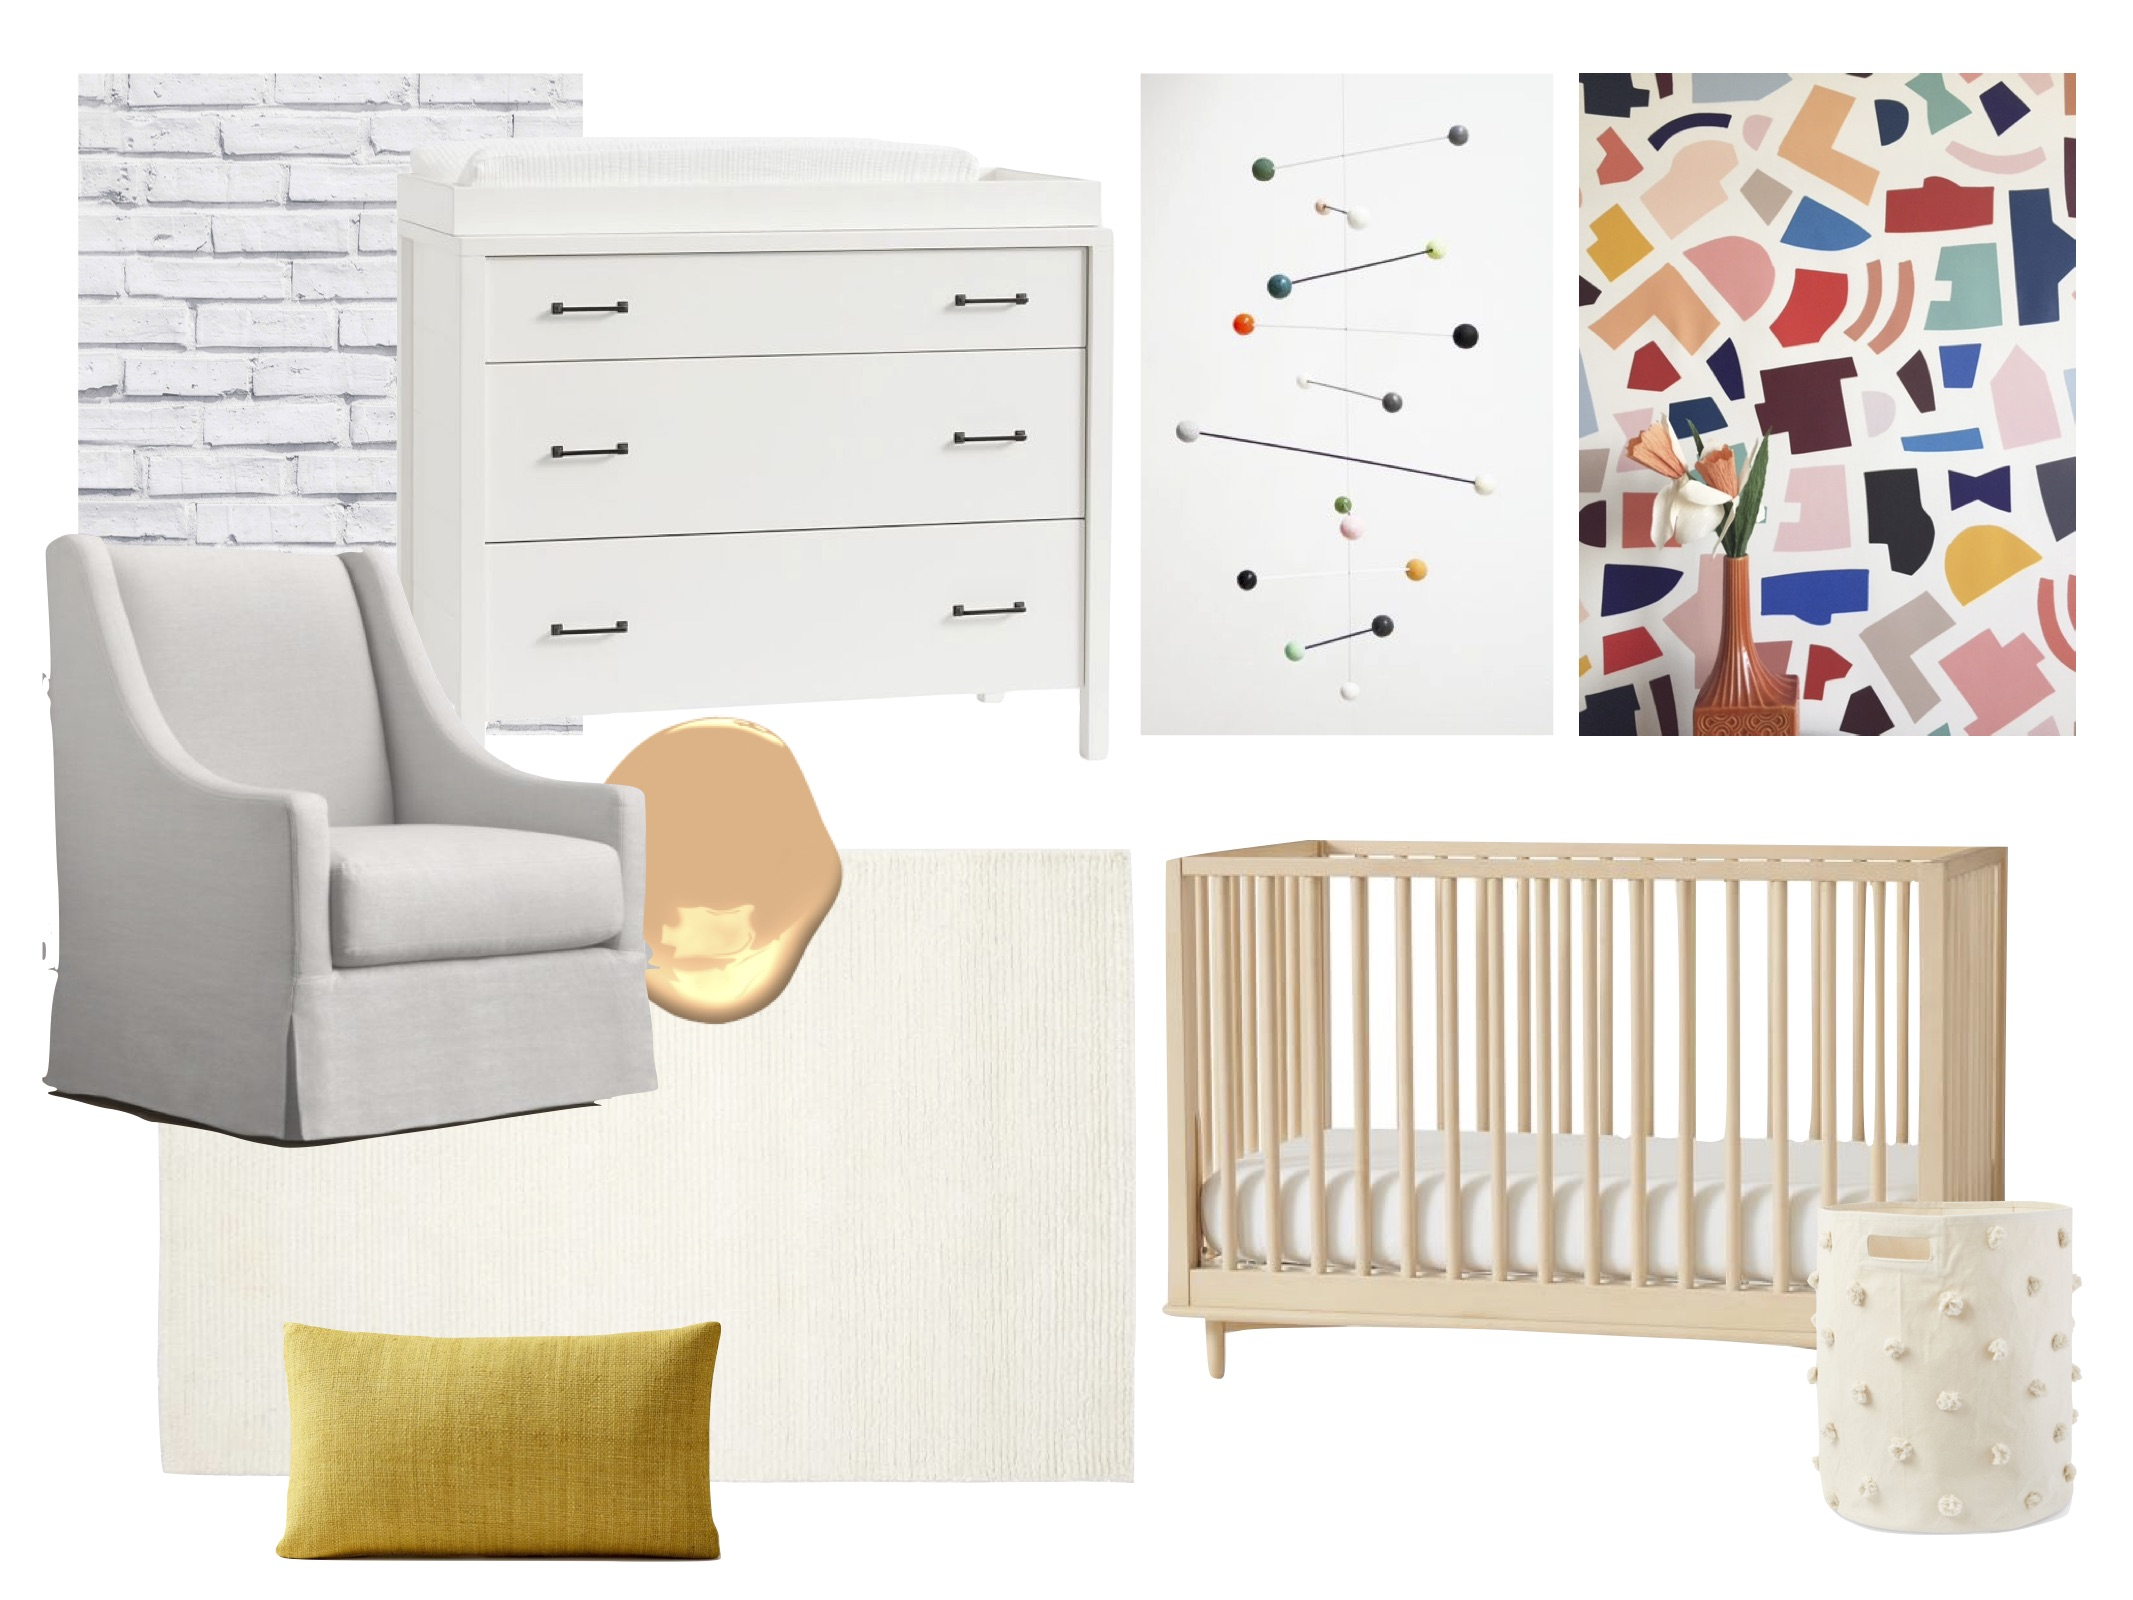 Chair  /  Dresser  /  mobile  (similar) /  wallpaper  /  crib  /  hamper  /  rug  /  pillow